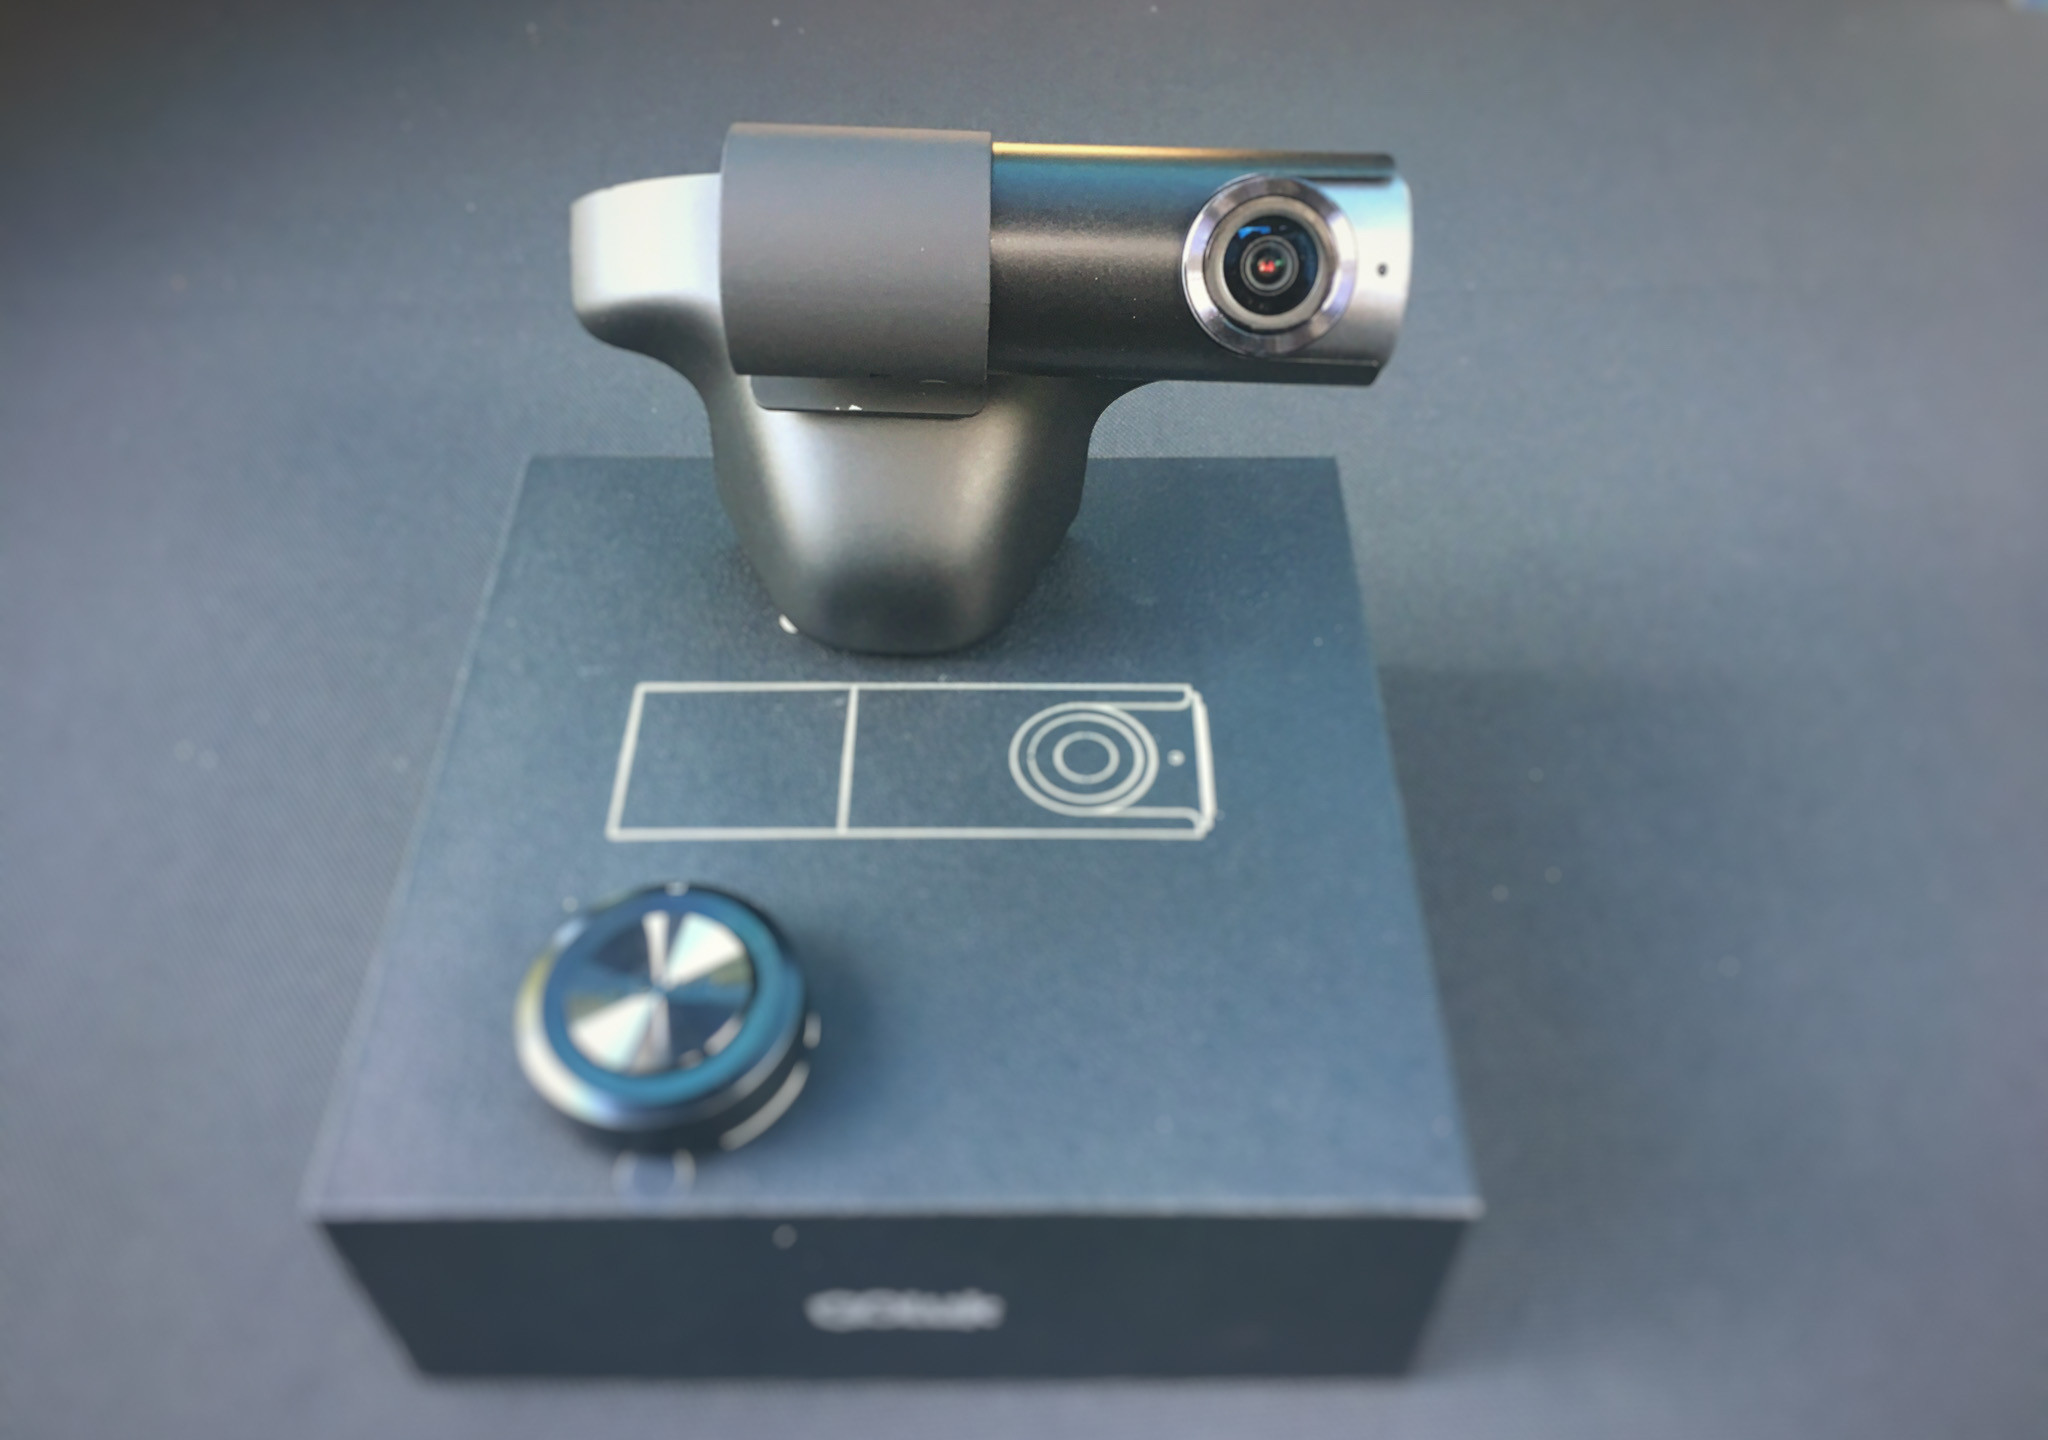 Goluk dashcam installer Carlisle Cumbria